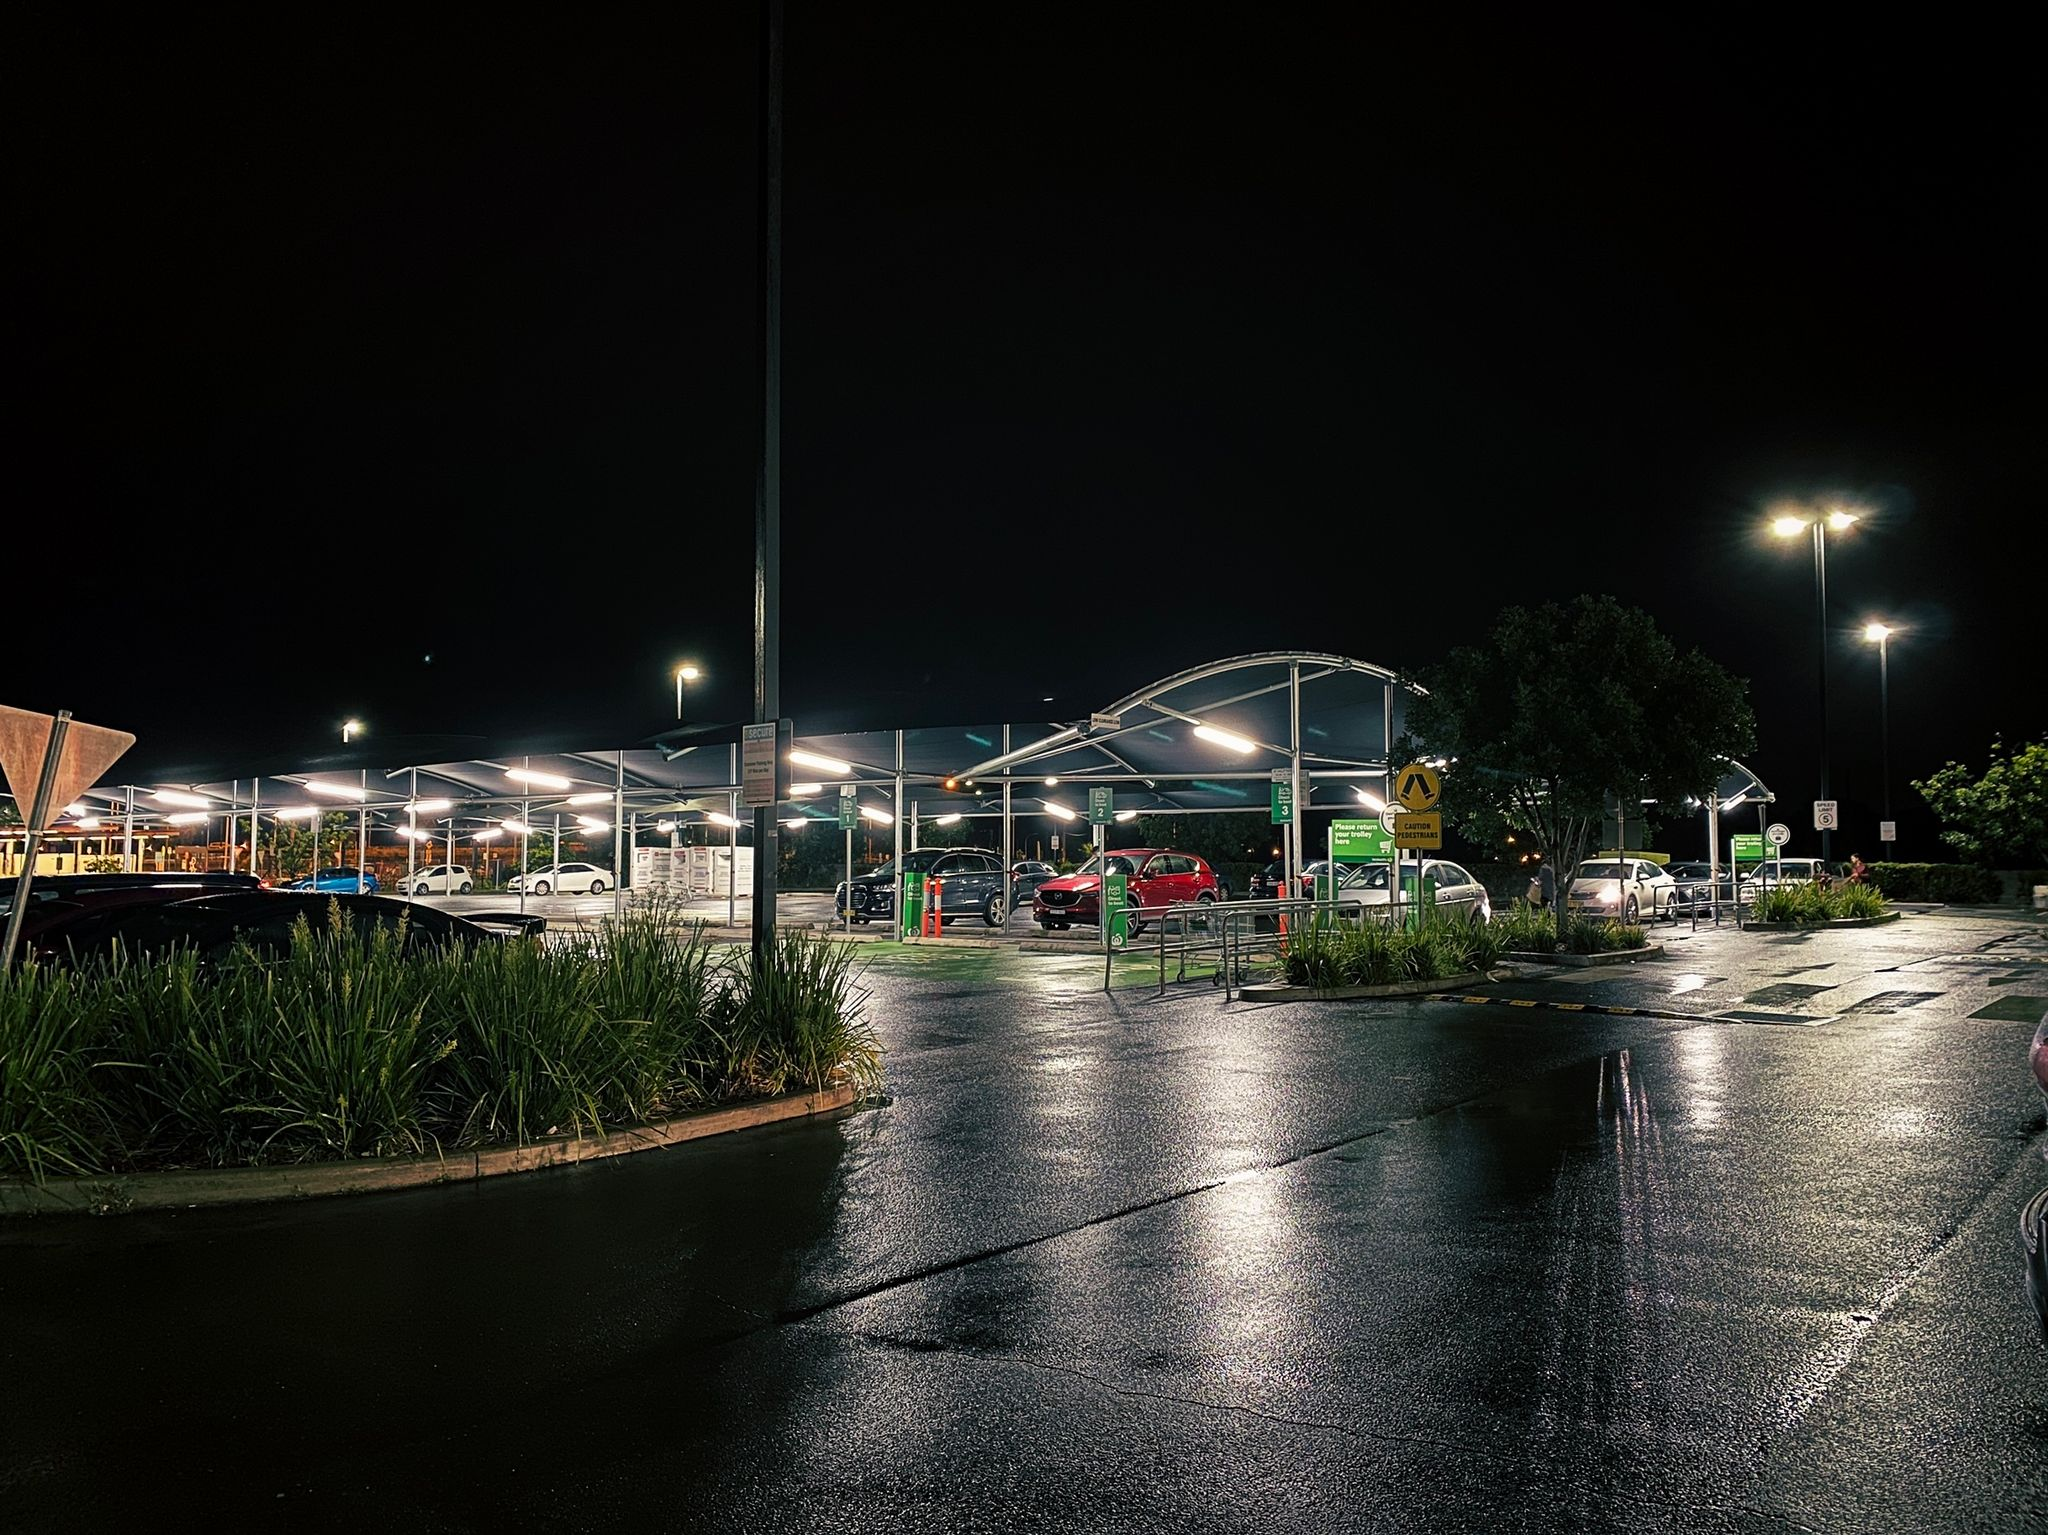 A photo of an open-air car park at night, with shade sails and a few cars. It's been raining and the ground is reflecting all the lights.